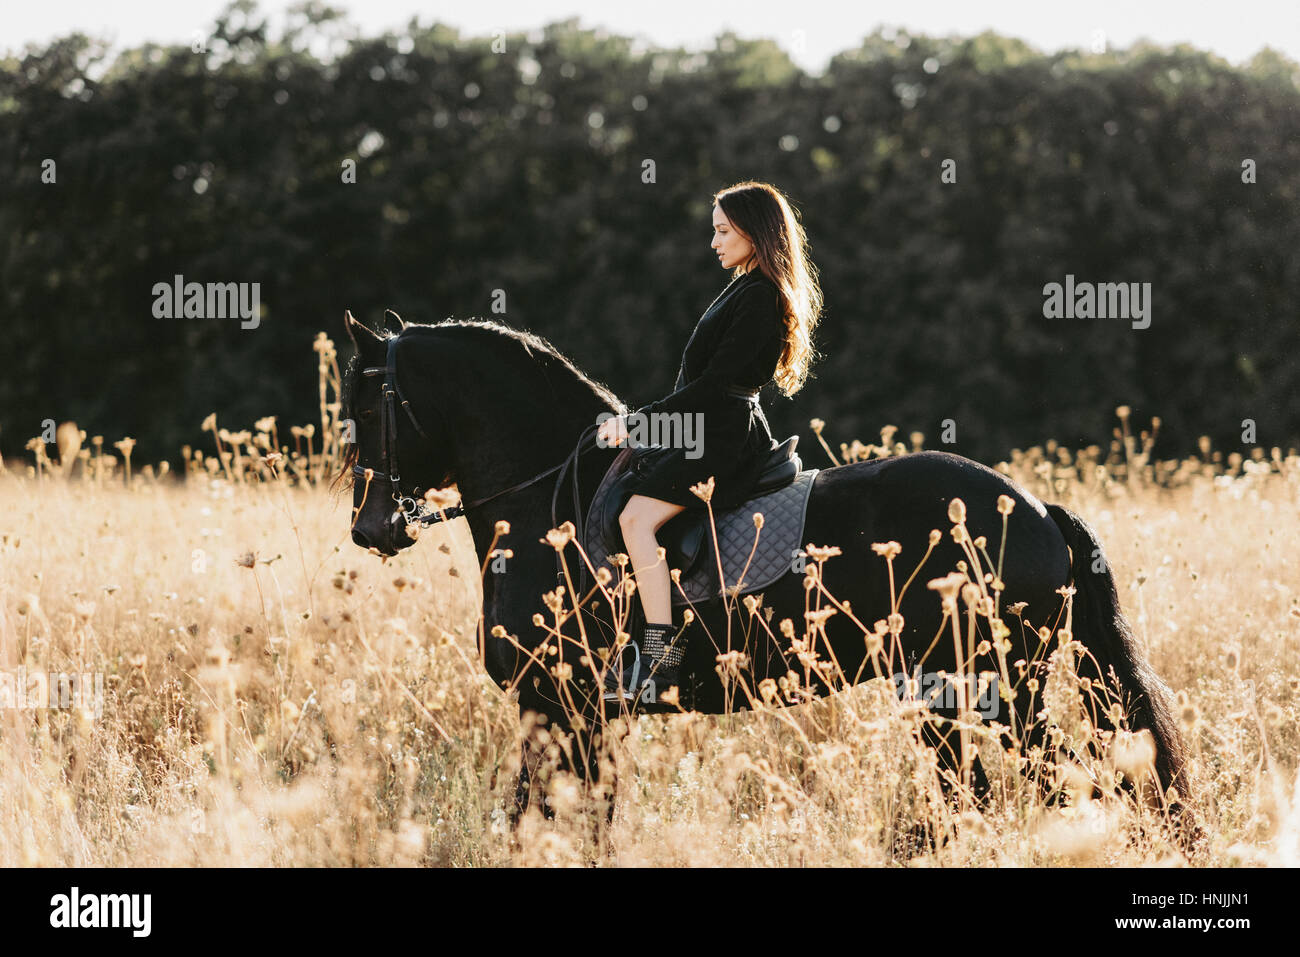 Caucasian Young Female Wearing Black Clothing Riding Her Black Horse Stock Photo Alamy